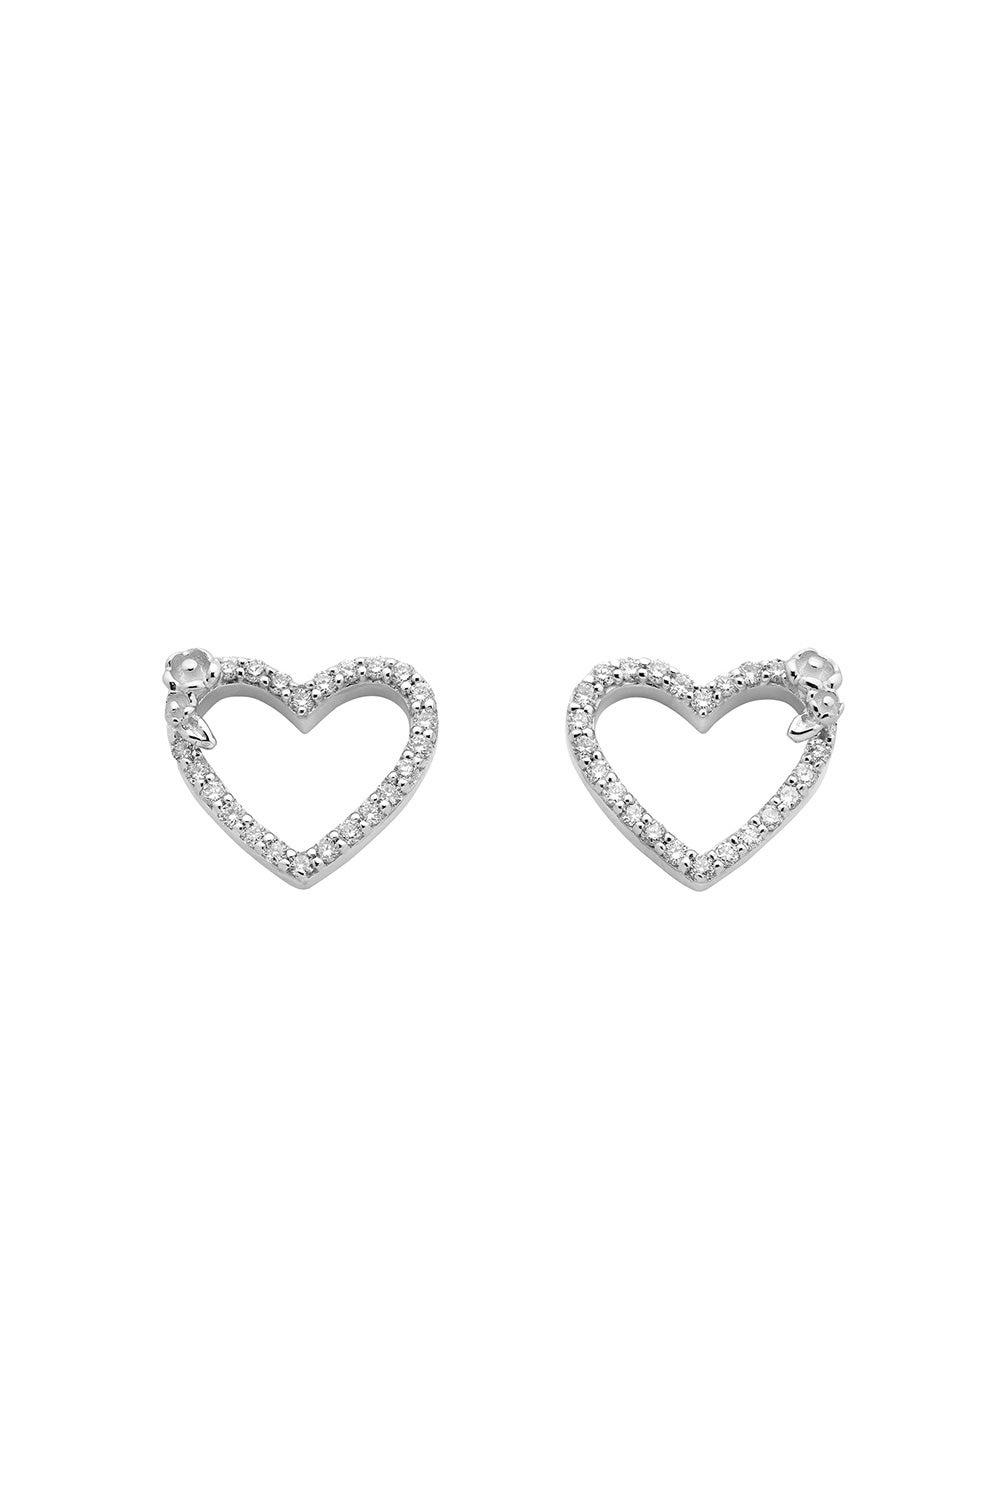 Diamond Botanical Heart Studs White Gold, .38ct Diamond